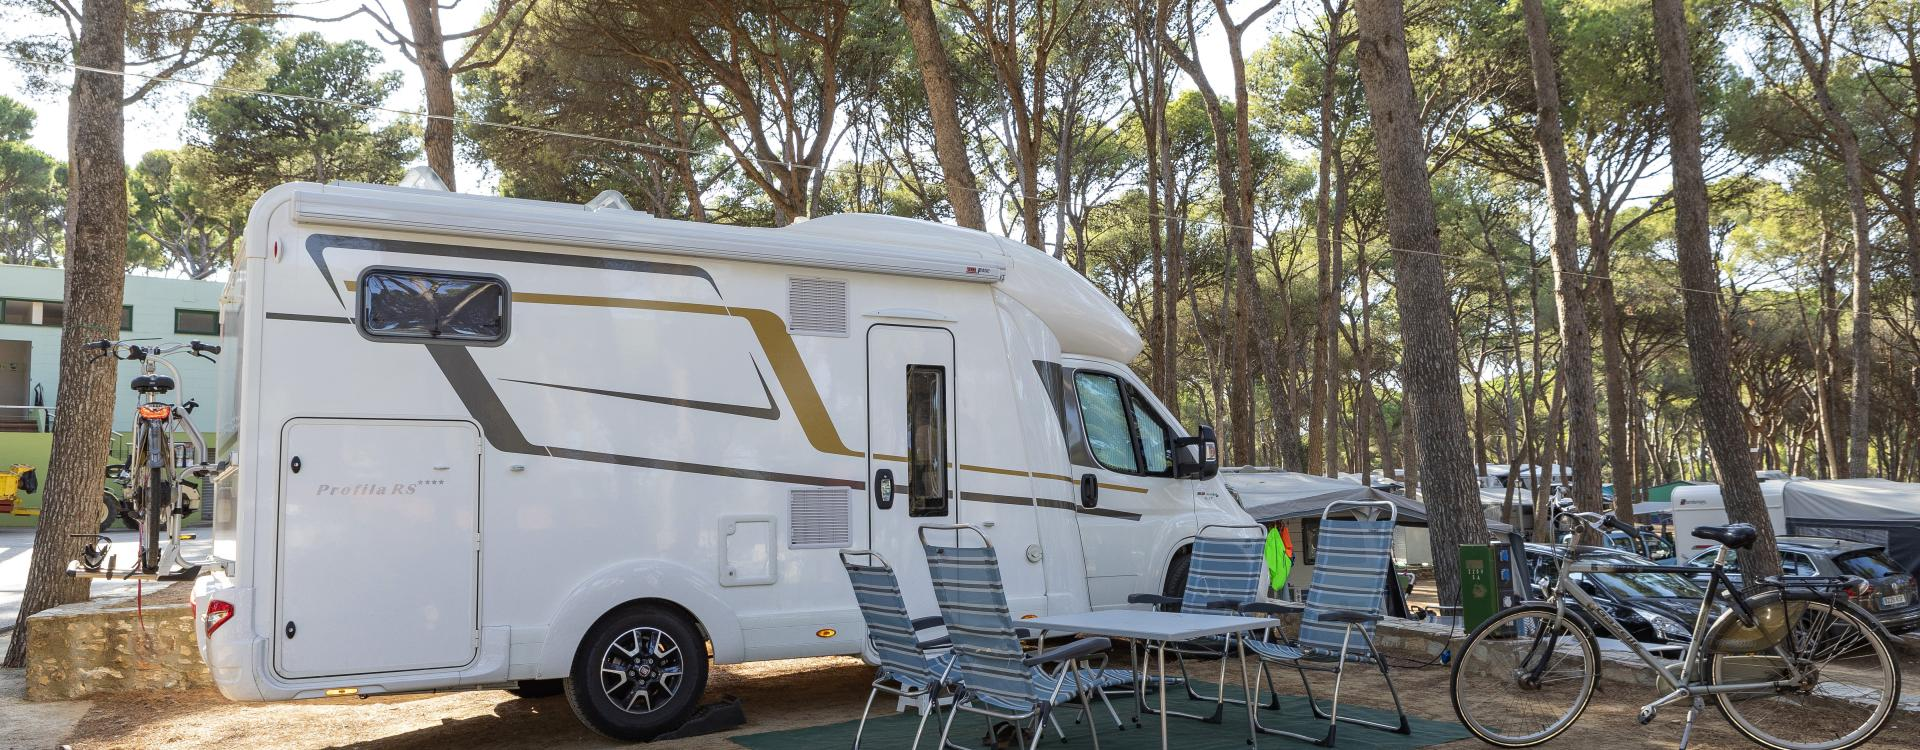 Camping for motorhome in Costa Brava